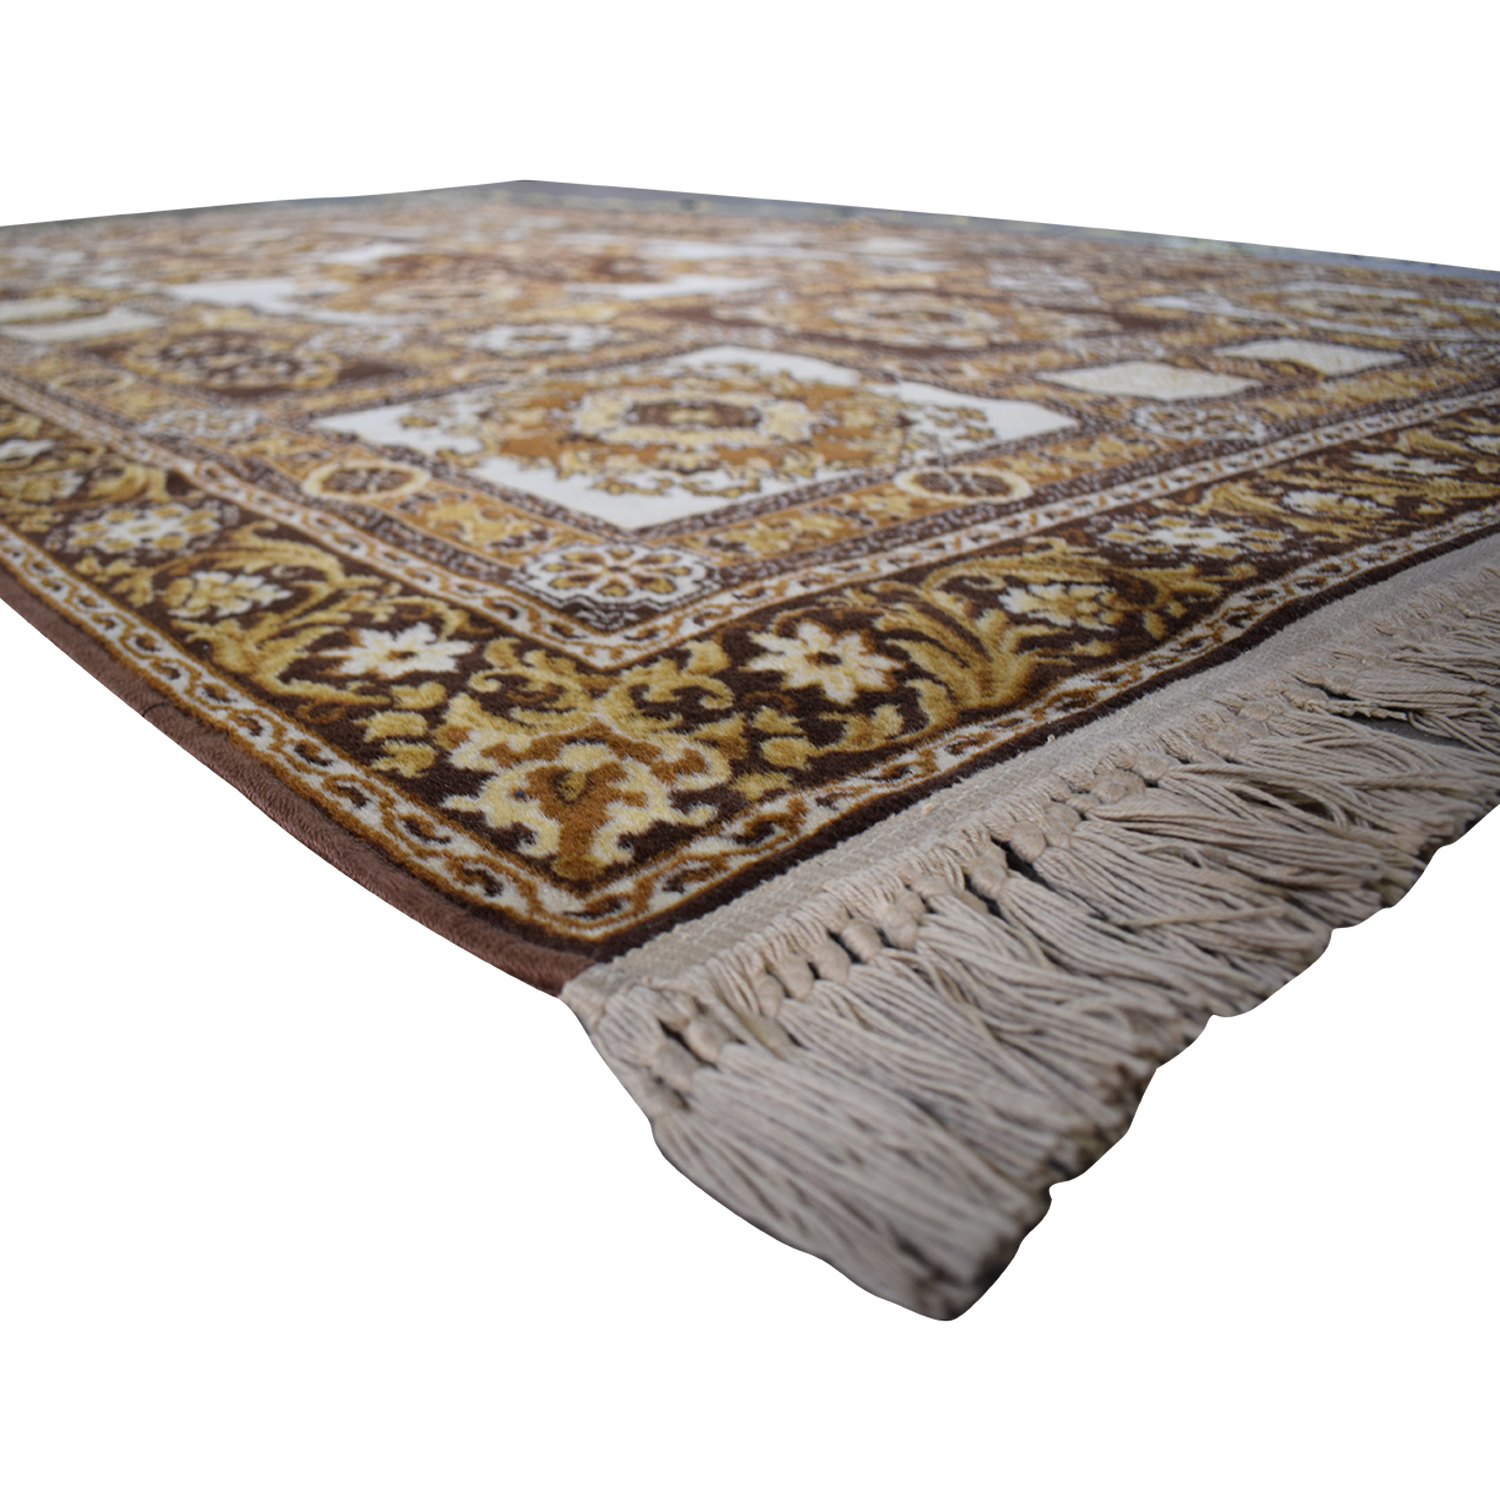 Patterned Wool Rug coupon